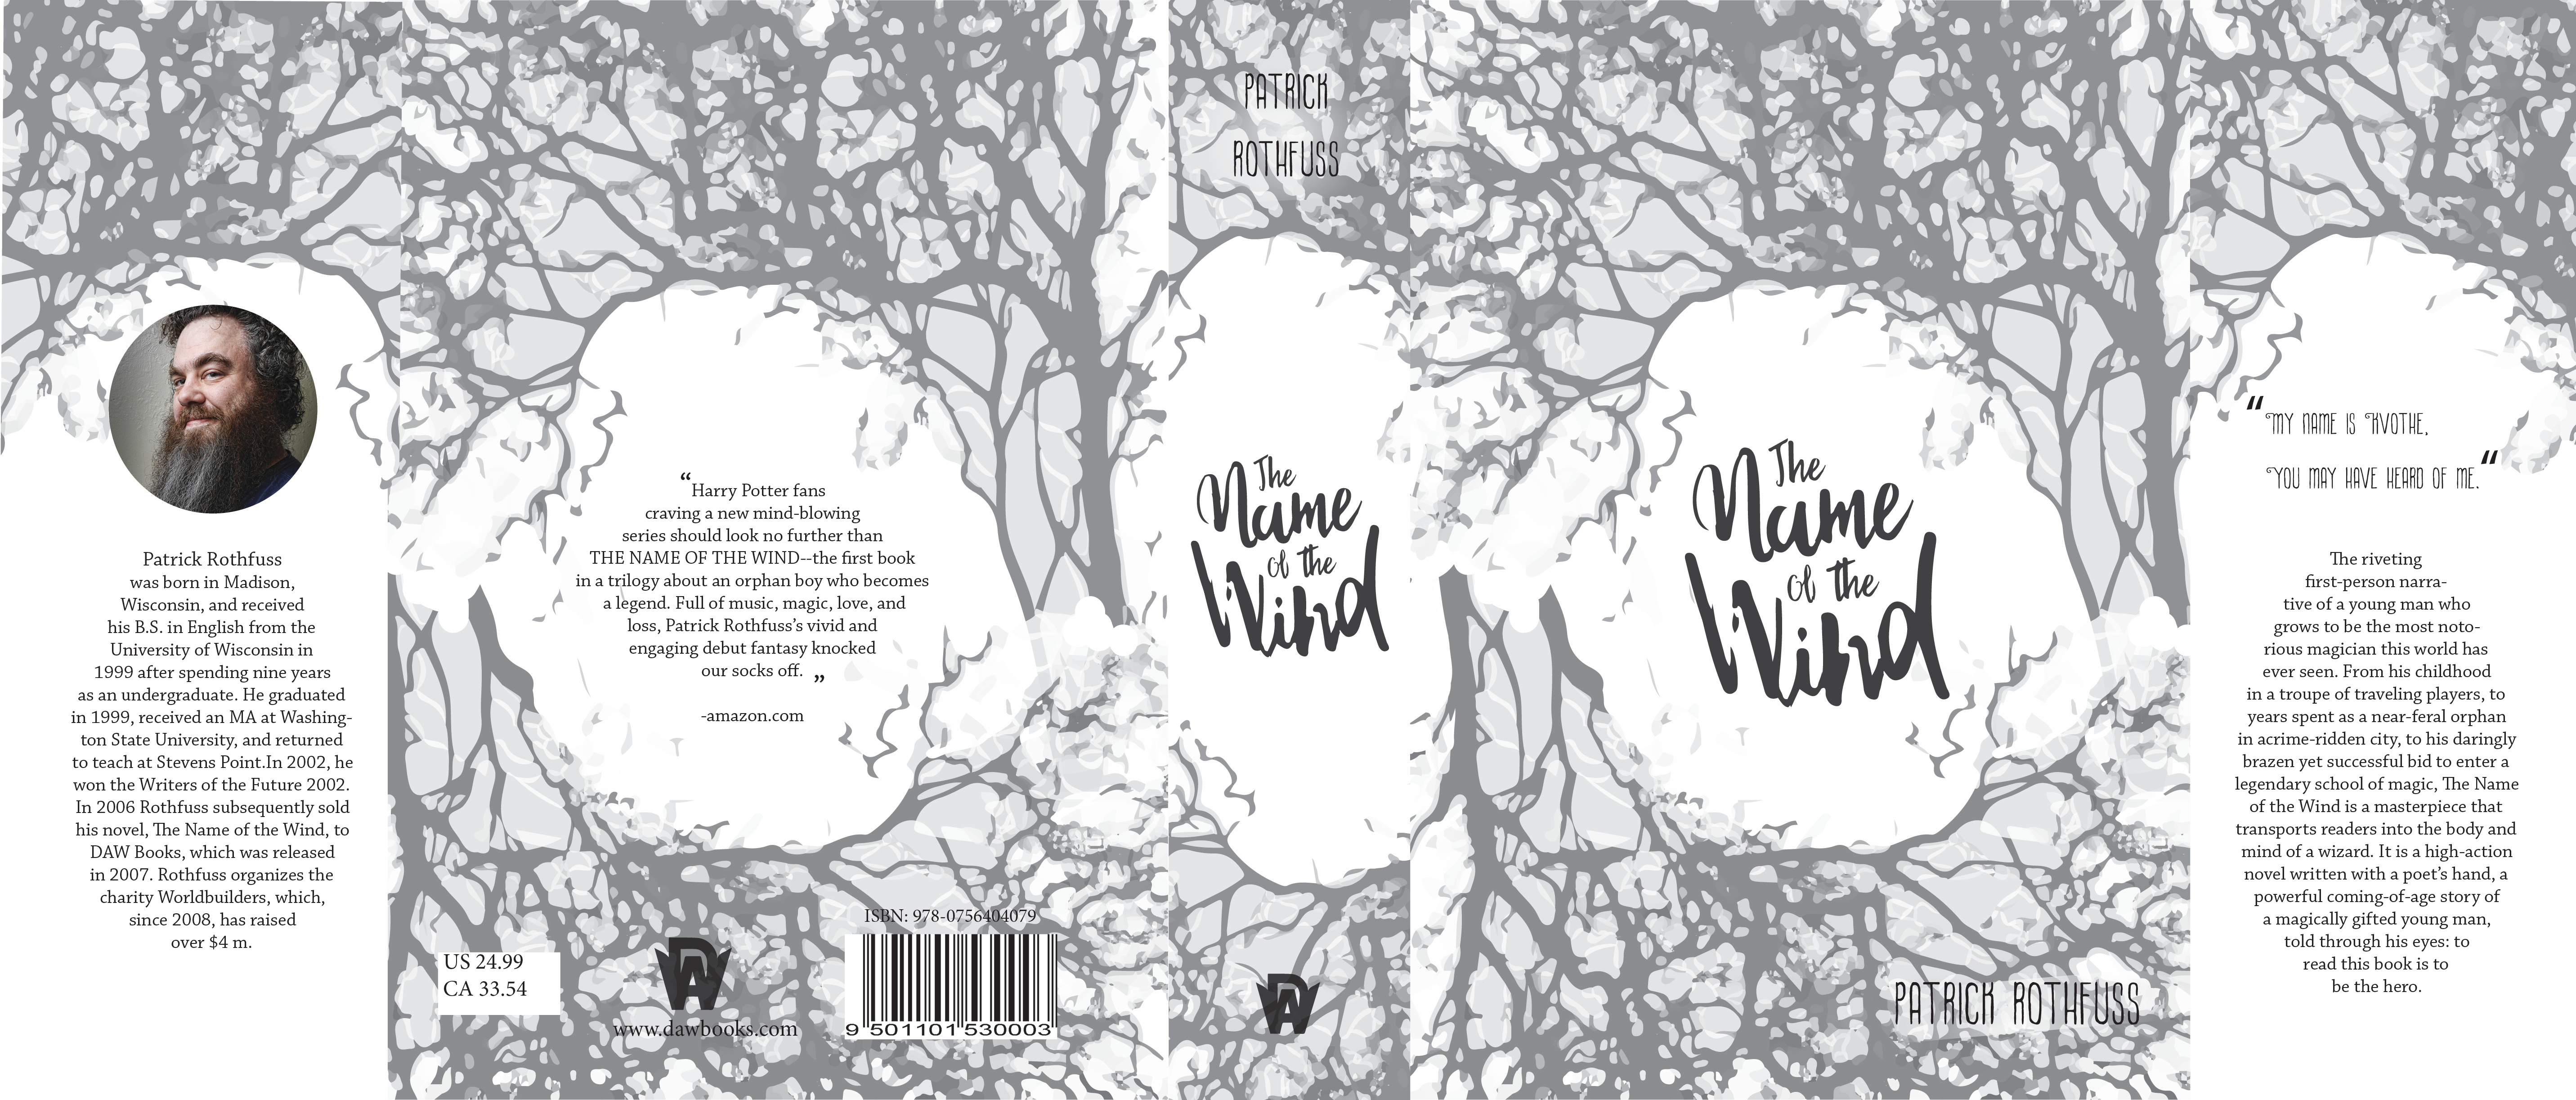 Book Jacket High Res